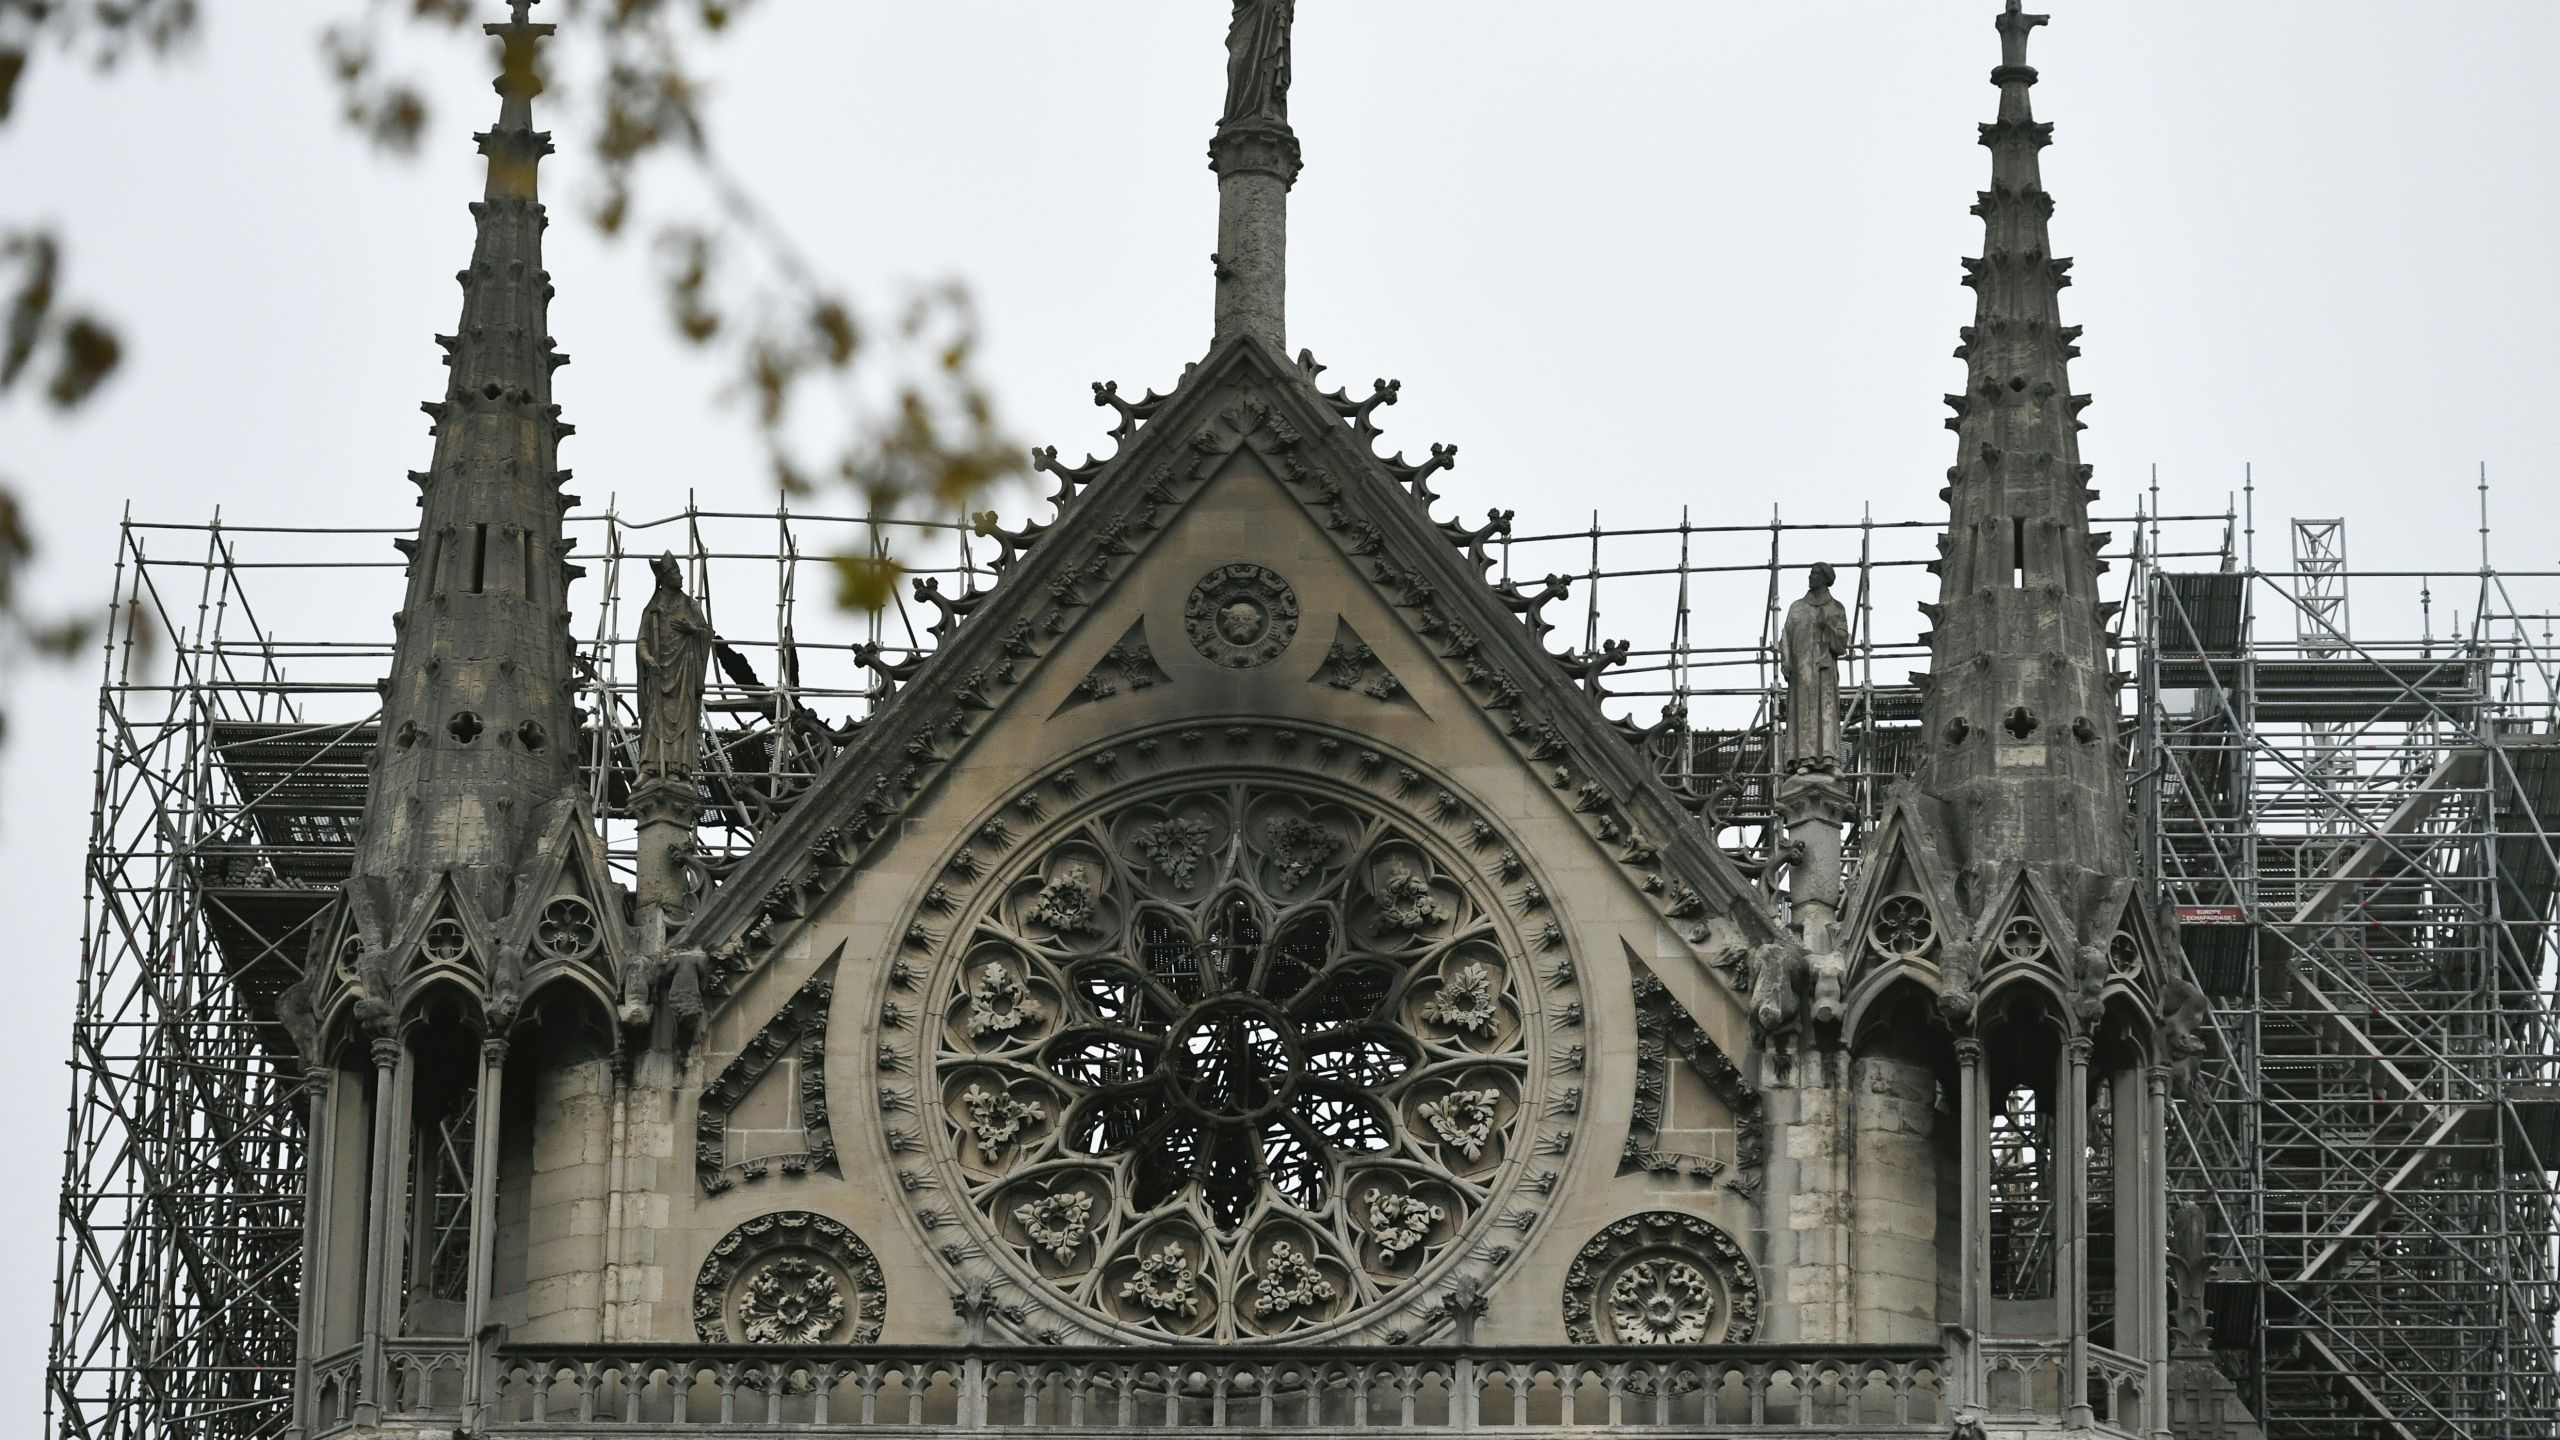 A picture shows Notre-Dame Cathedral in Paris on April 16, 2019, in the aftermath of a fire that caused its spire to crash to the ground.(Credit: STEPHANE DE SAKUTIN/AFP/Getty Images)